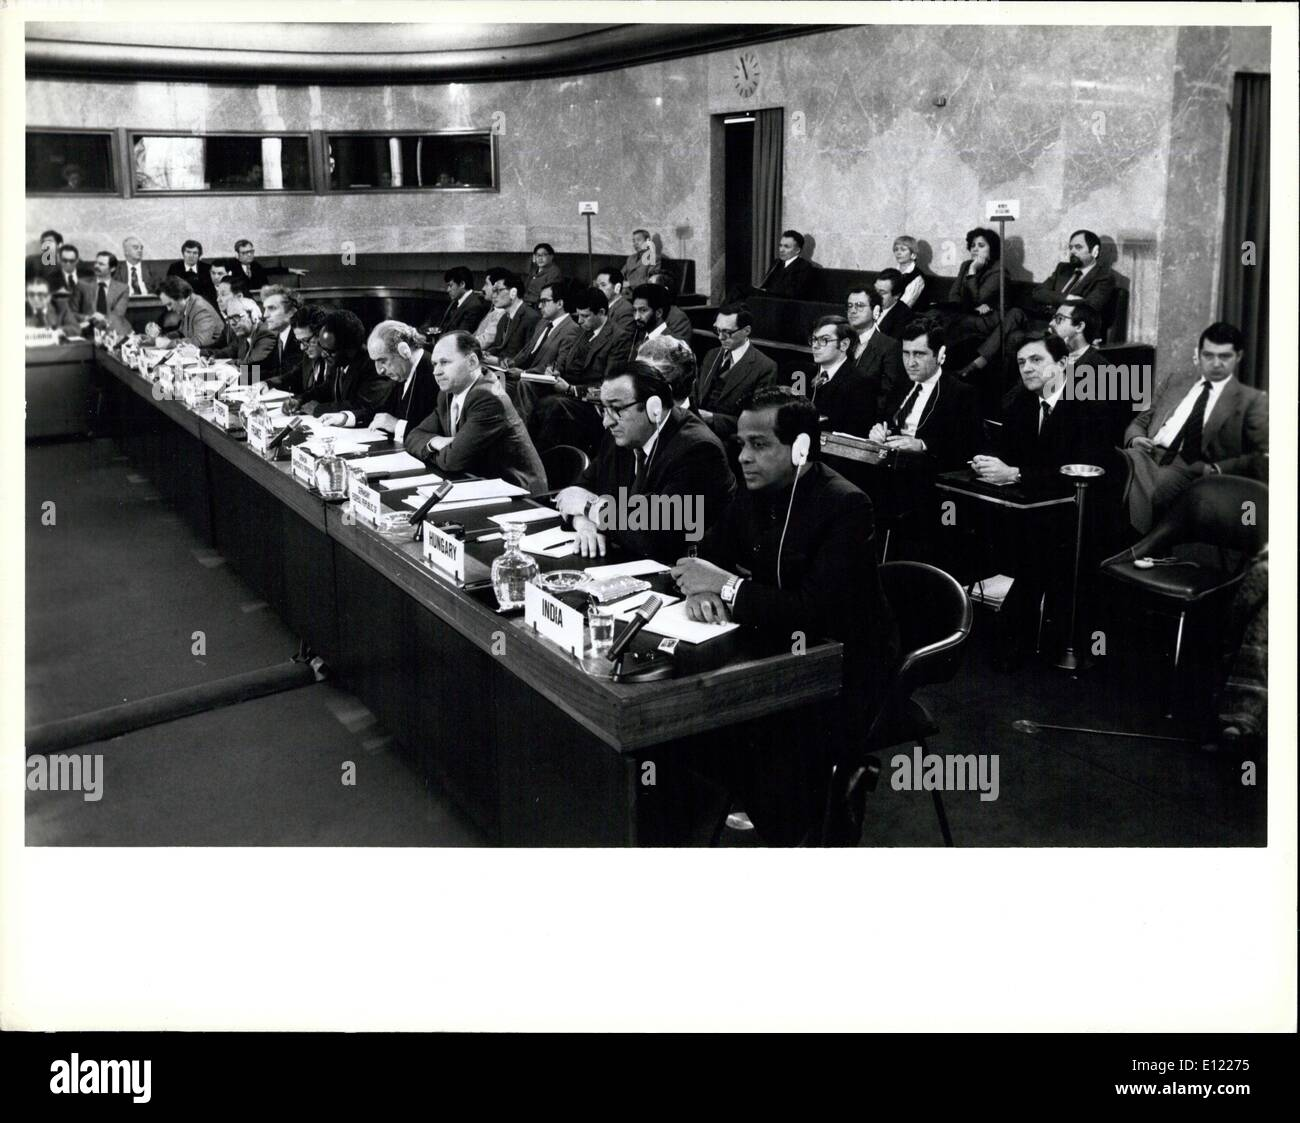 Feb. 02, 1982 - Committee on Disarmament begins 1982 session. United Nations, Geneva, 2 February 1982 ? The Committee on Disarmament, the world?s principal forum for multilateral negotiations in the field of disarmament, this morning began its 1982 session at the Palais des Nations. It has been requested to submit to the General Assembly?s Second Special Session on disarmament (New York, 7 June to 9 July, 1982) a special report on the state of negotiations of the various questions under consideration by the Committee - Stock Image